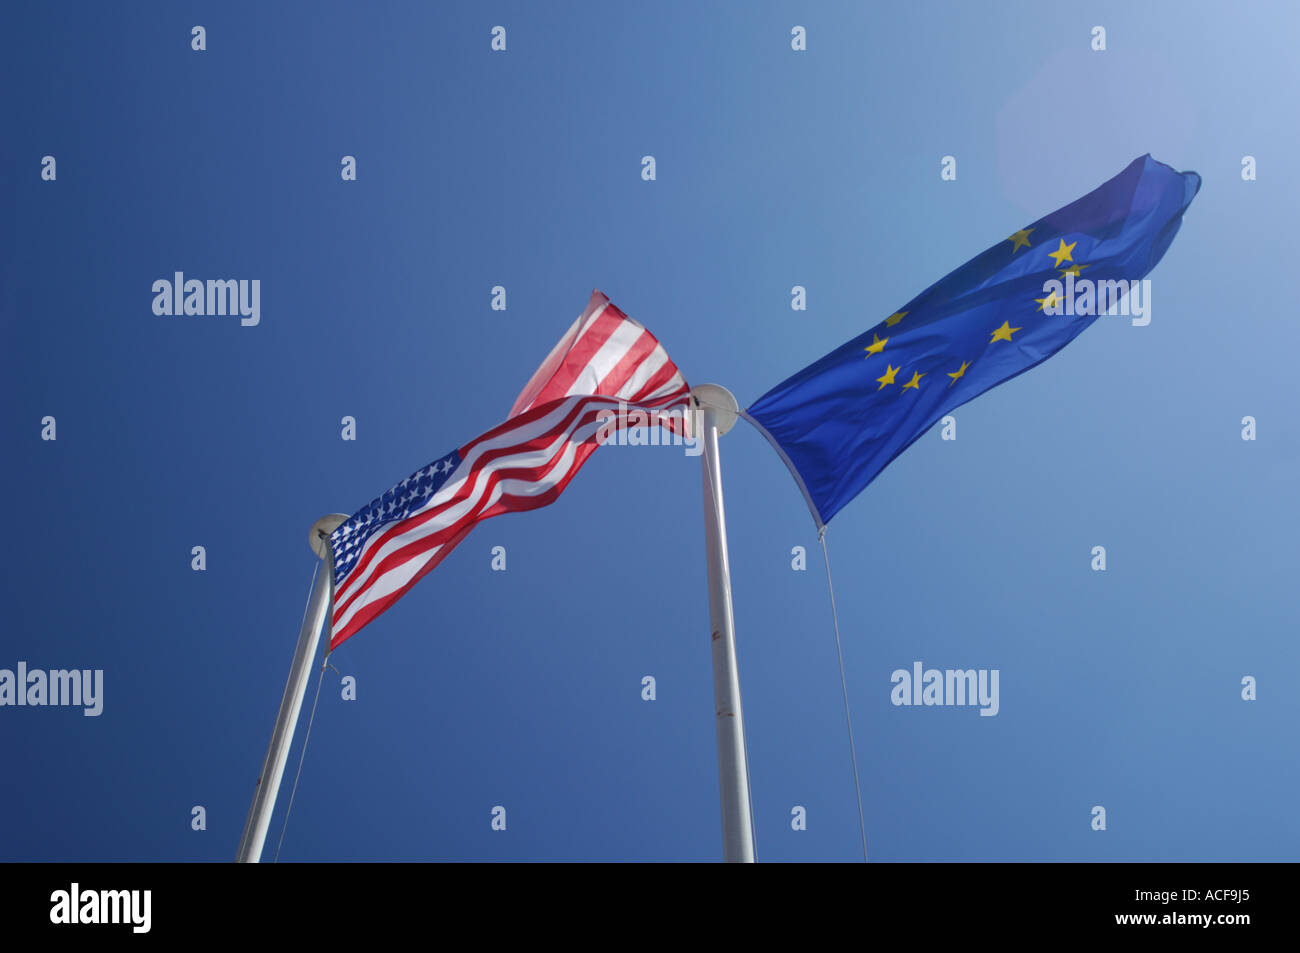 United States and European Union flags flying side by side in a blue sky - Stock Image